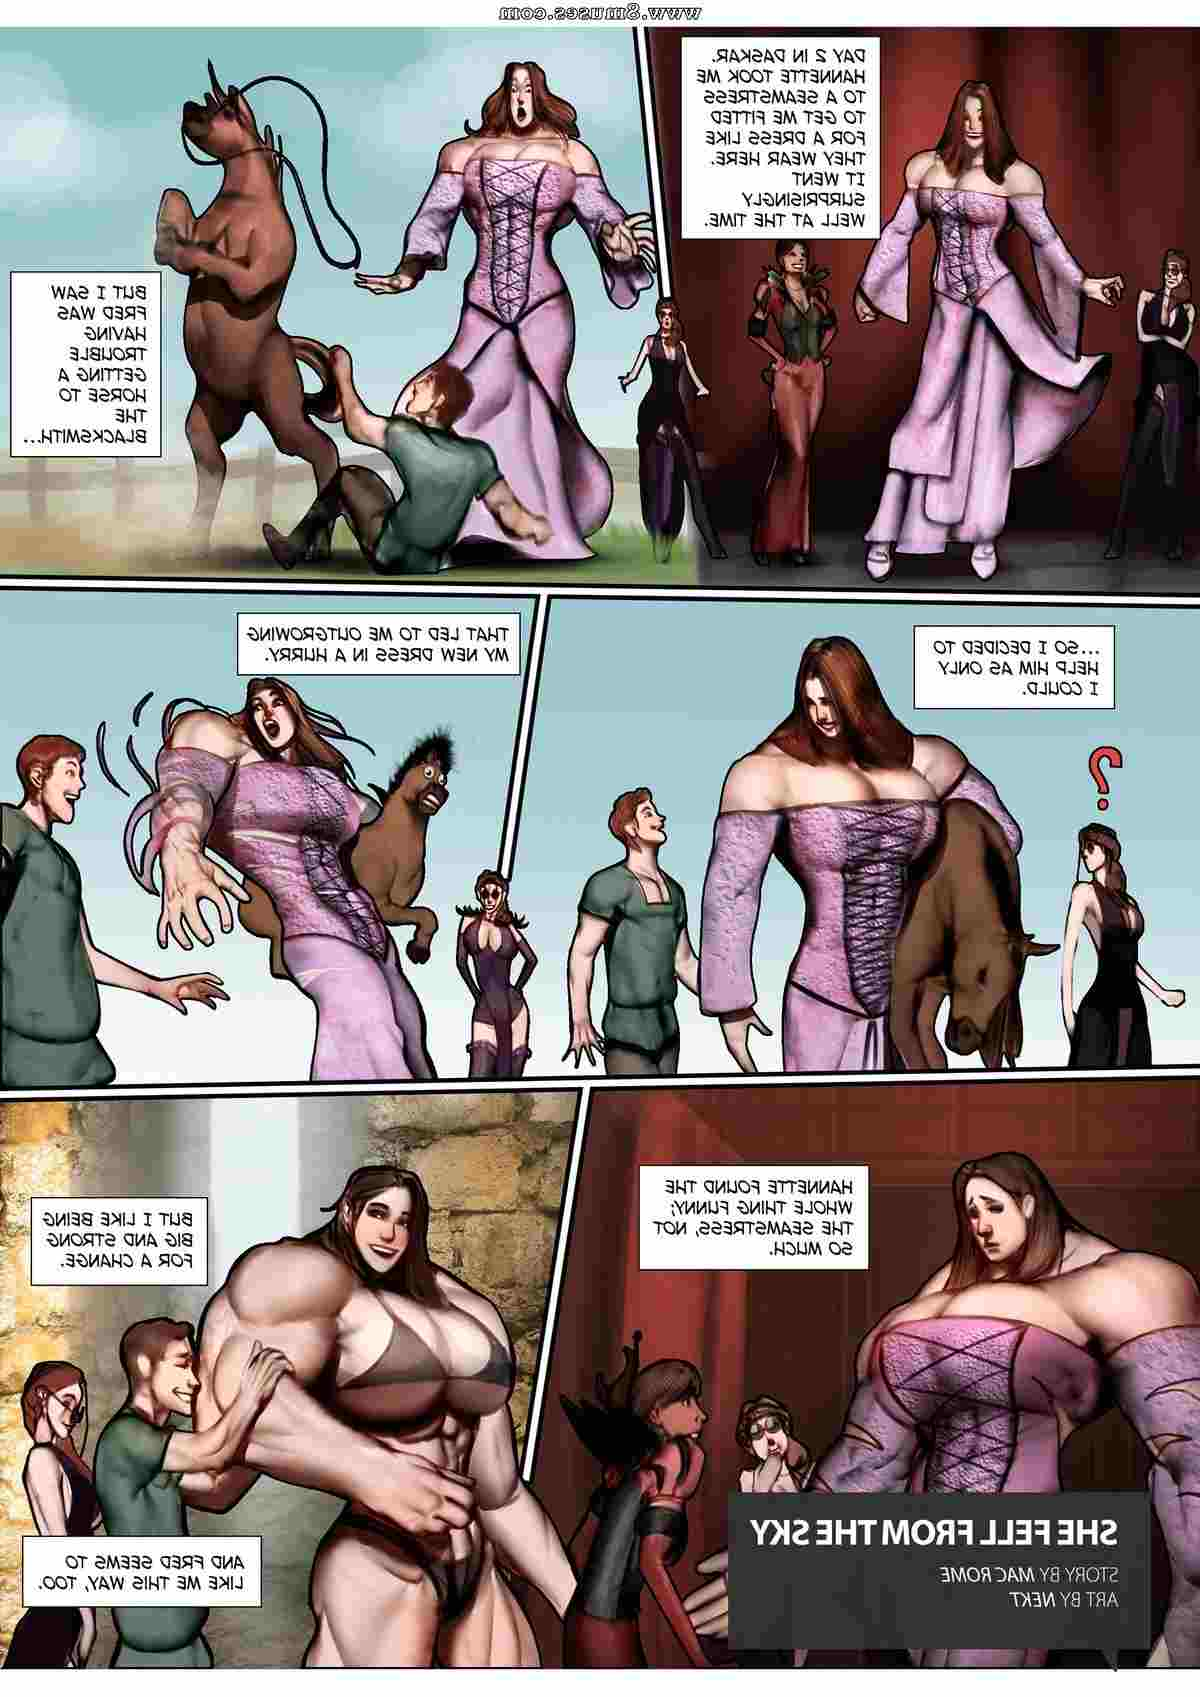 MuscleFan-Comics/The-Ever-Changing-World The_Ever-Changing_World__8muses_-_Sex_and_Porn_Comics_30.jpg